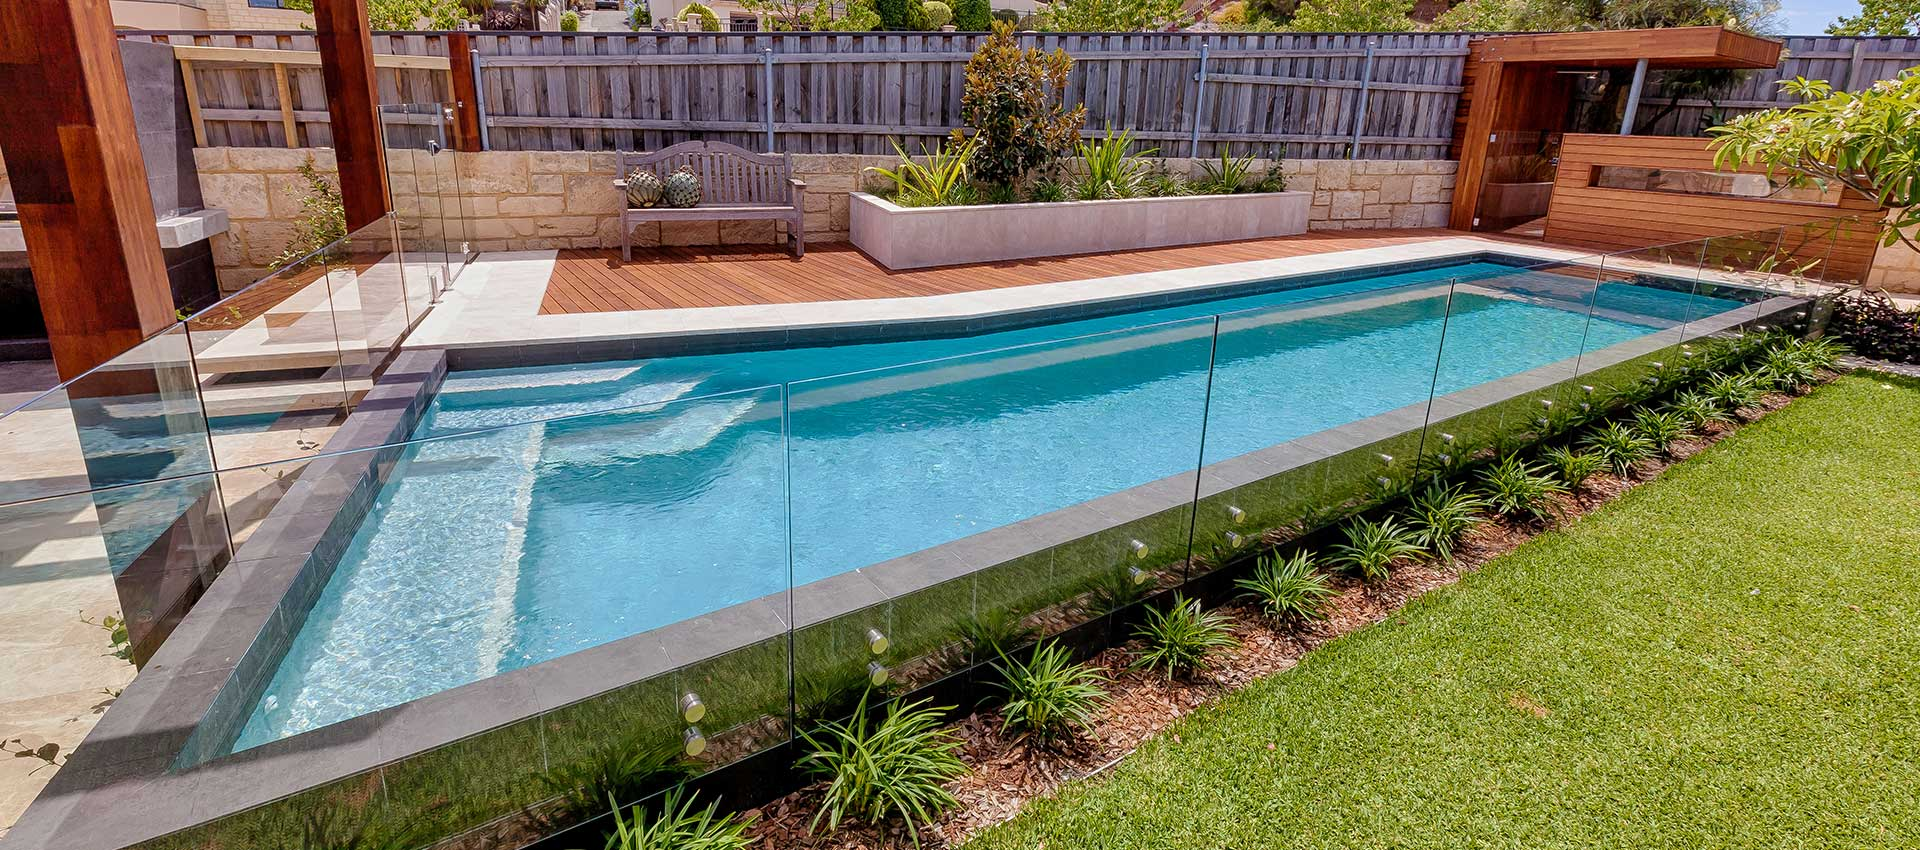 Coastline pools the hunters award swimming pool builders for Swimming pool builders